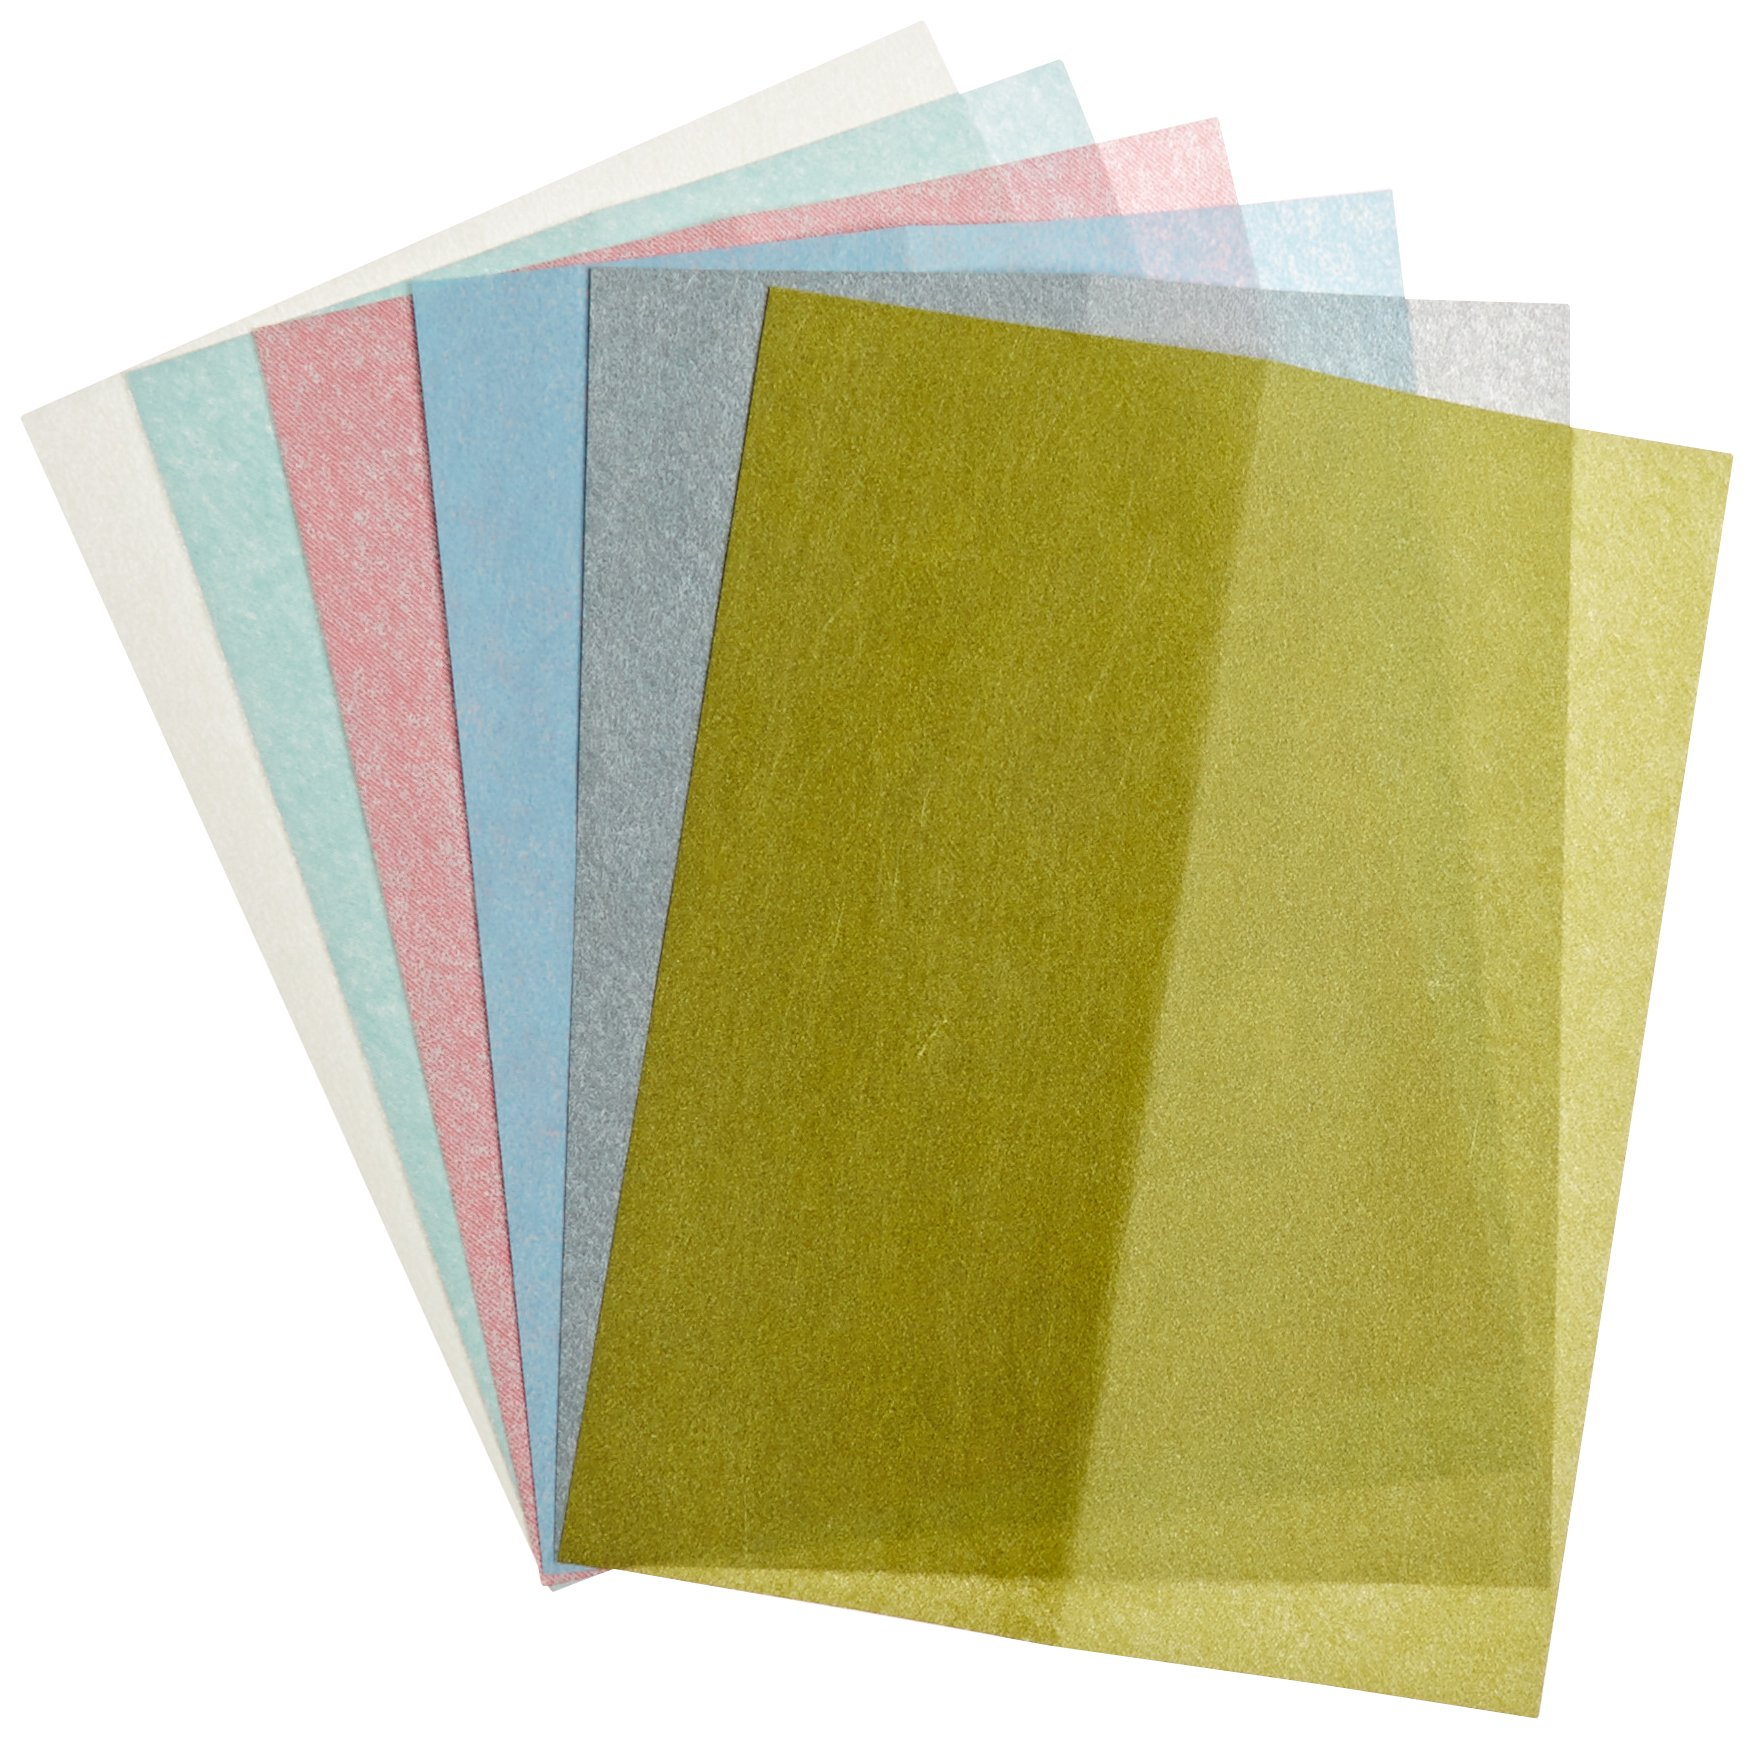 Zona 37-948 3M Wet/Dry Polishing Paper, 8-1/2-Inch X 11-Inch, Assortment Pack One Each 1, 2, 3, 9, 15, and 30 Micron by ZONA